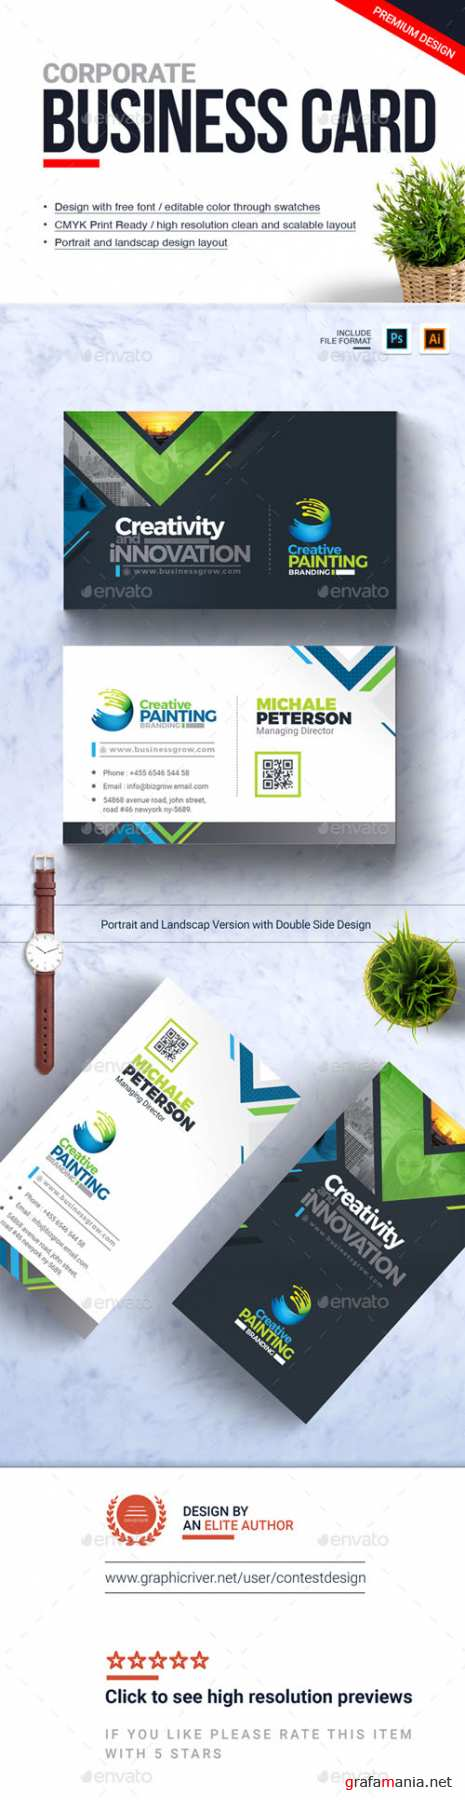 Corporate Business Card Design Template 20952678